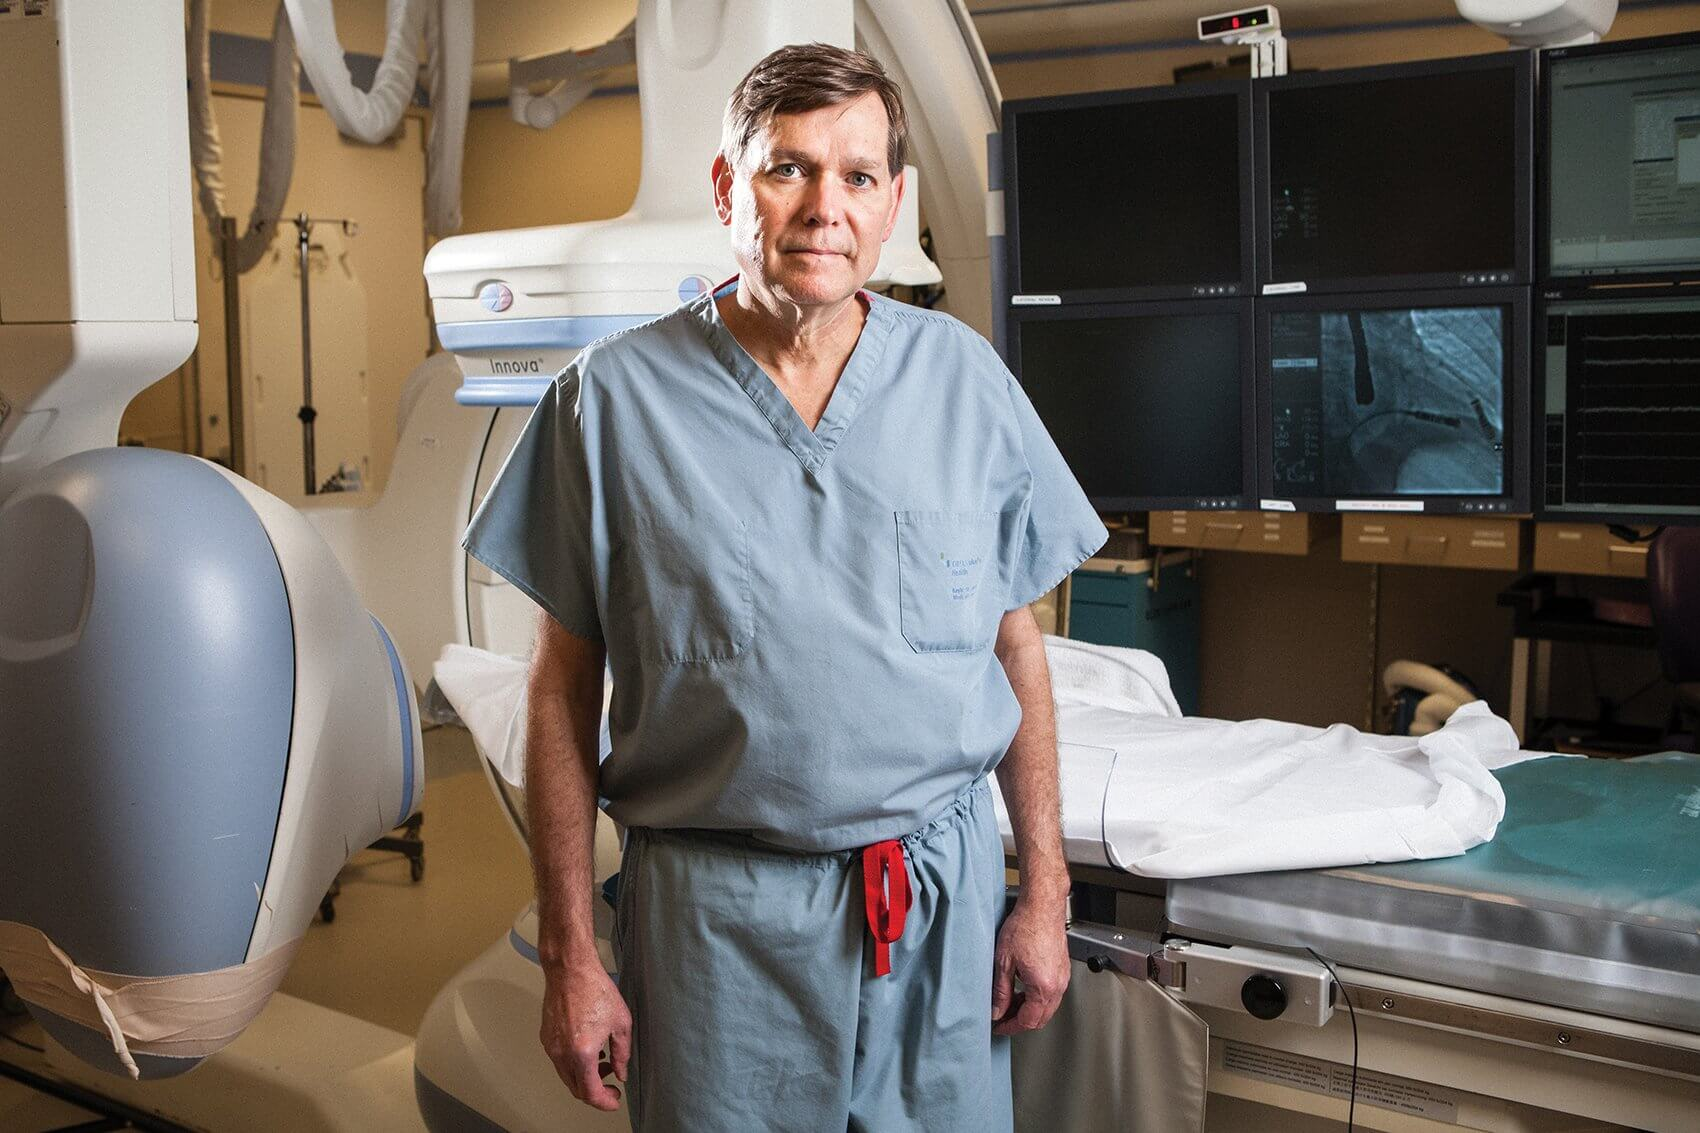 John Seger, M.D., performed the procedure to implant the Micra transcatheter pacemaker.